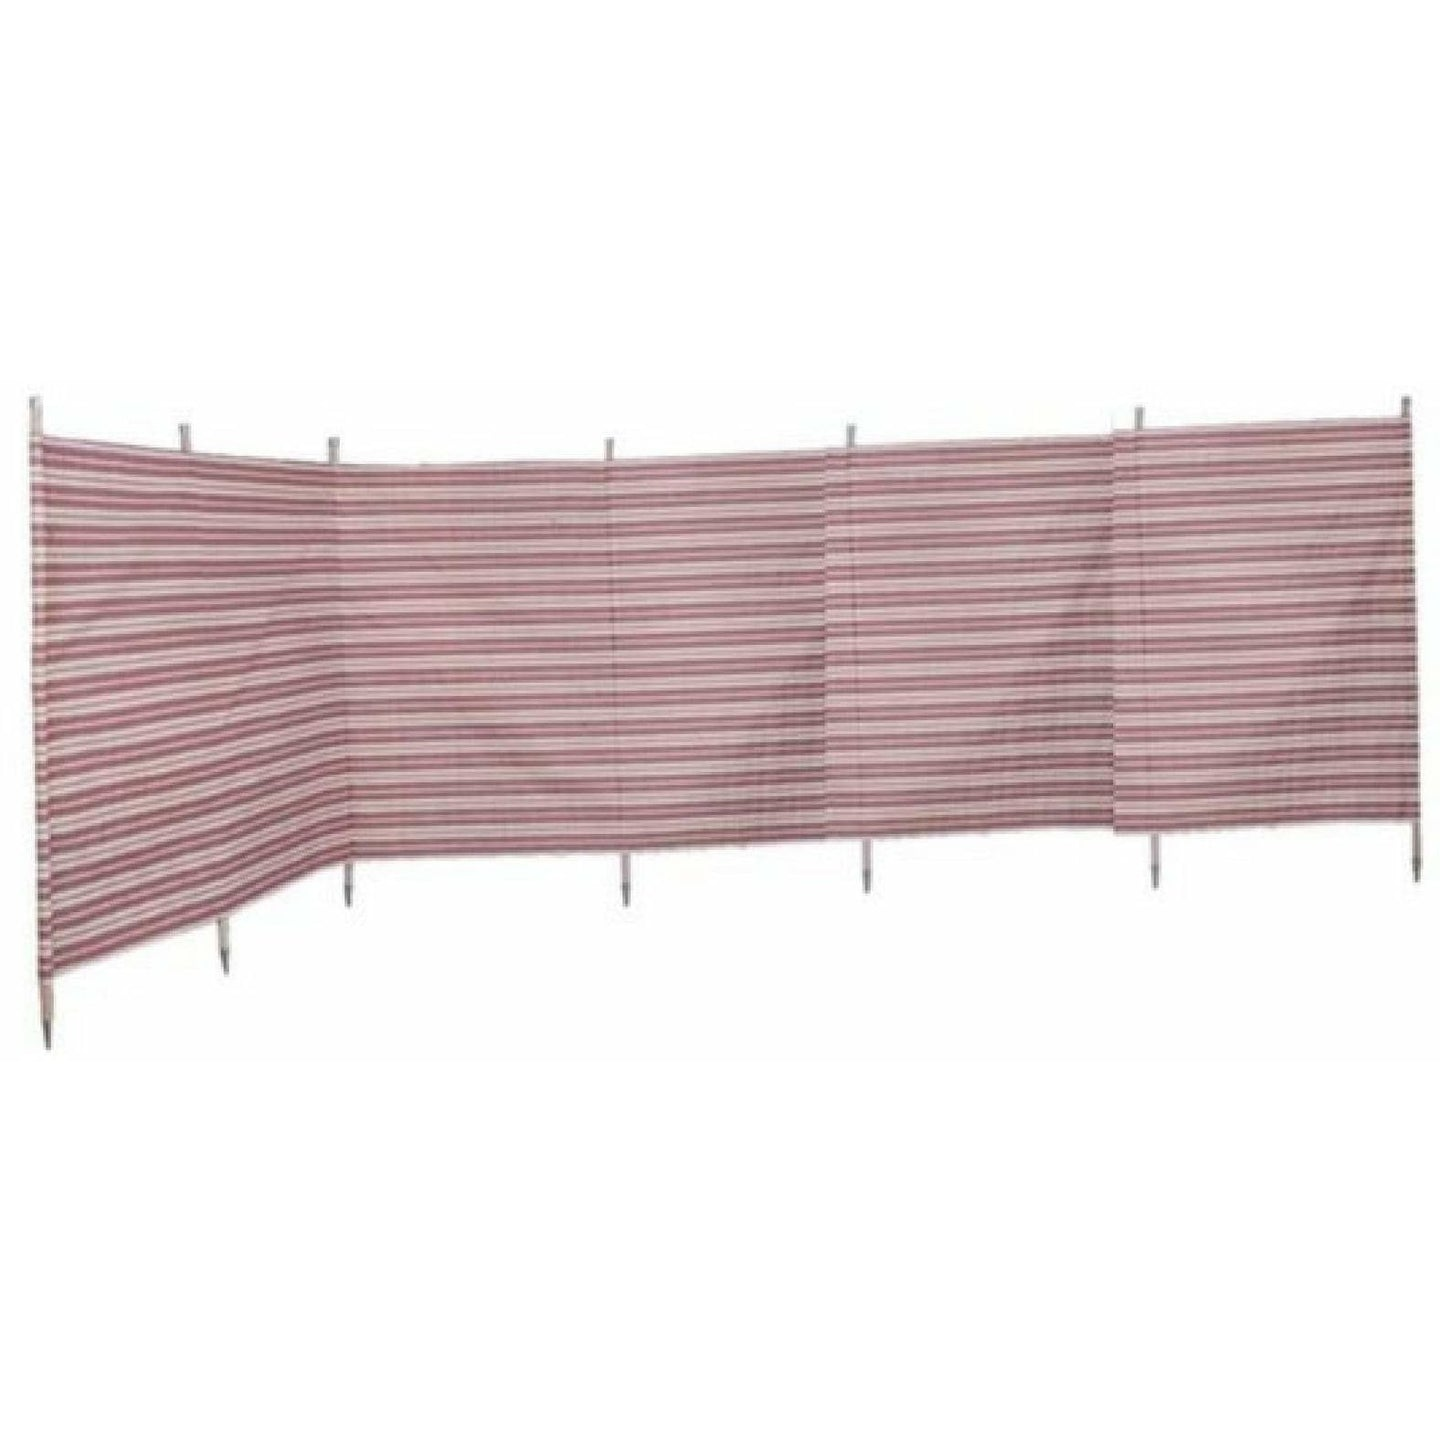 Outdoor Revolution Windbreak 7 Pole Burgundy Stripe (5.4 m single piping) WB700 - Quality Caravan Awnings